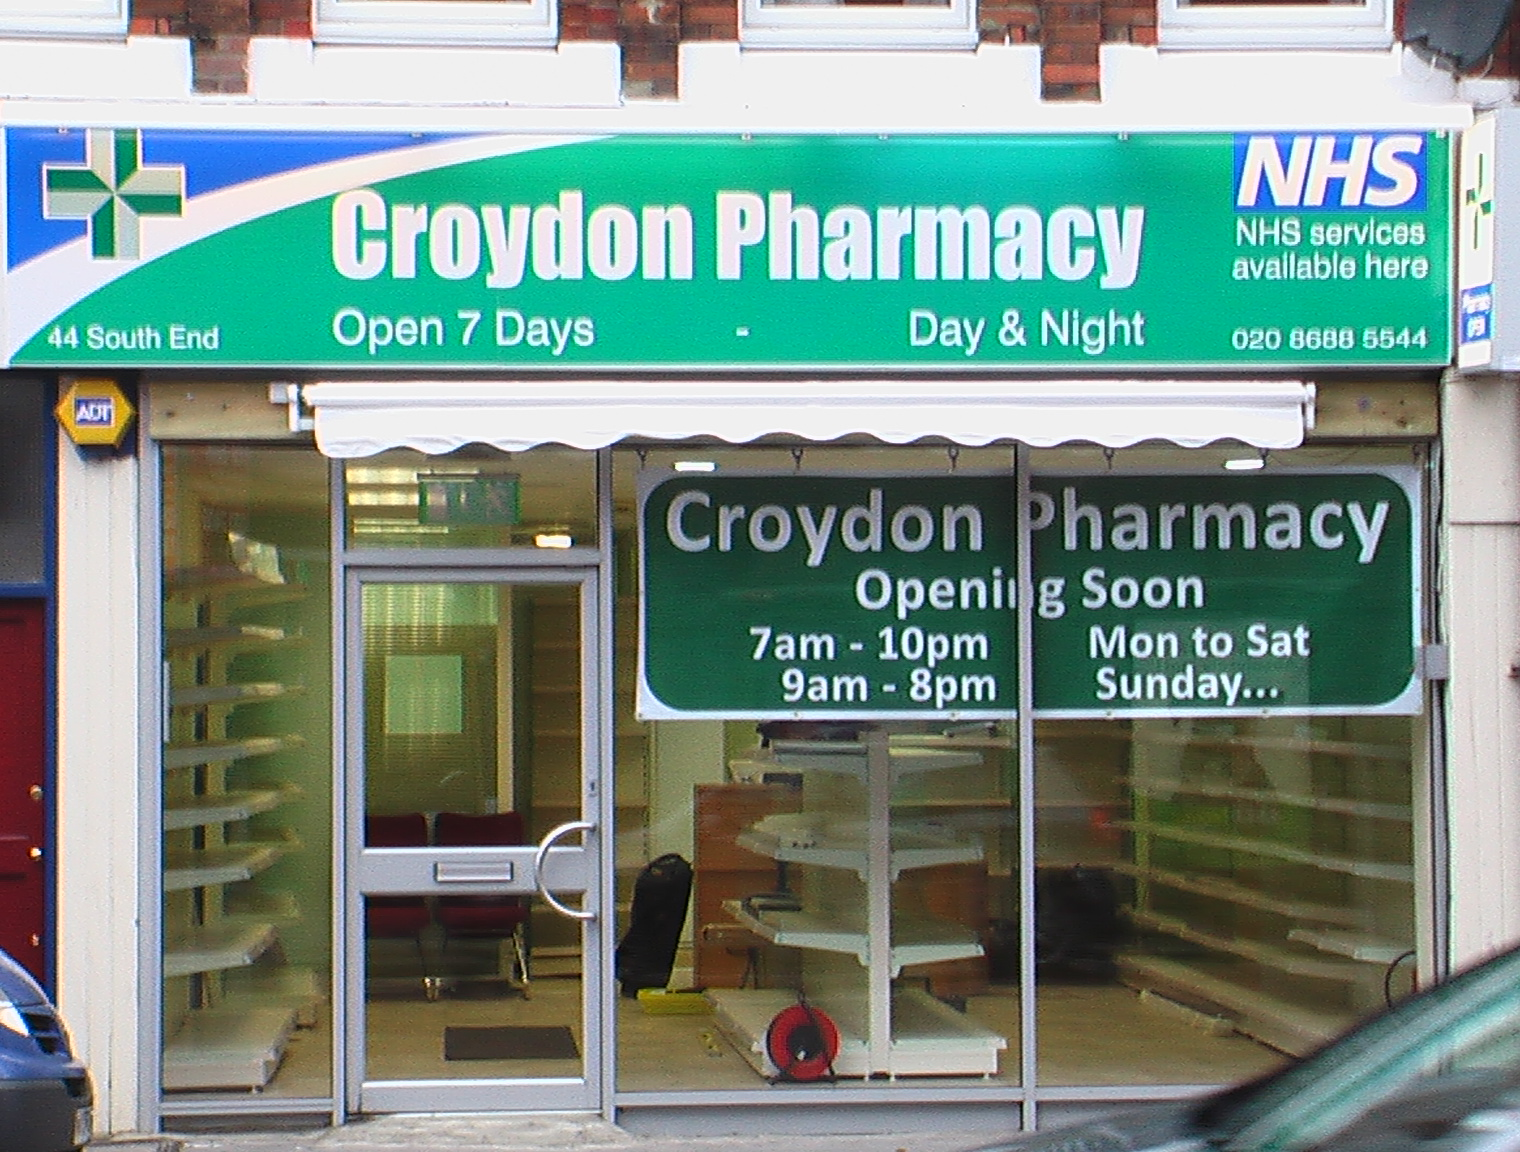 Croydon Pharmacy